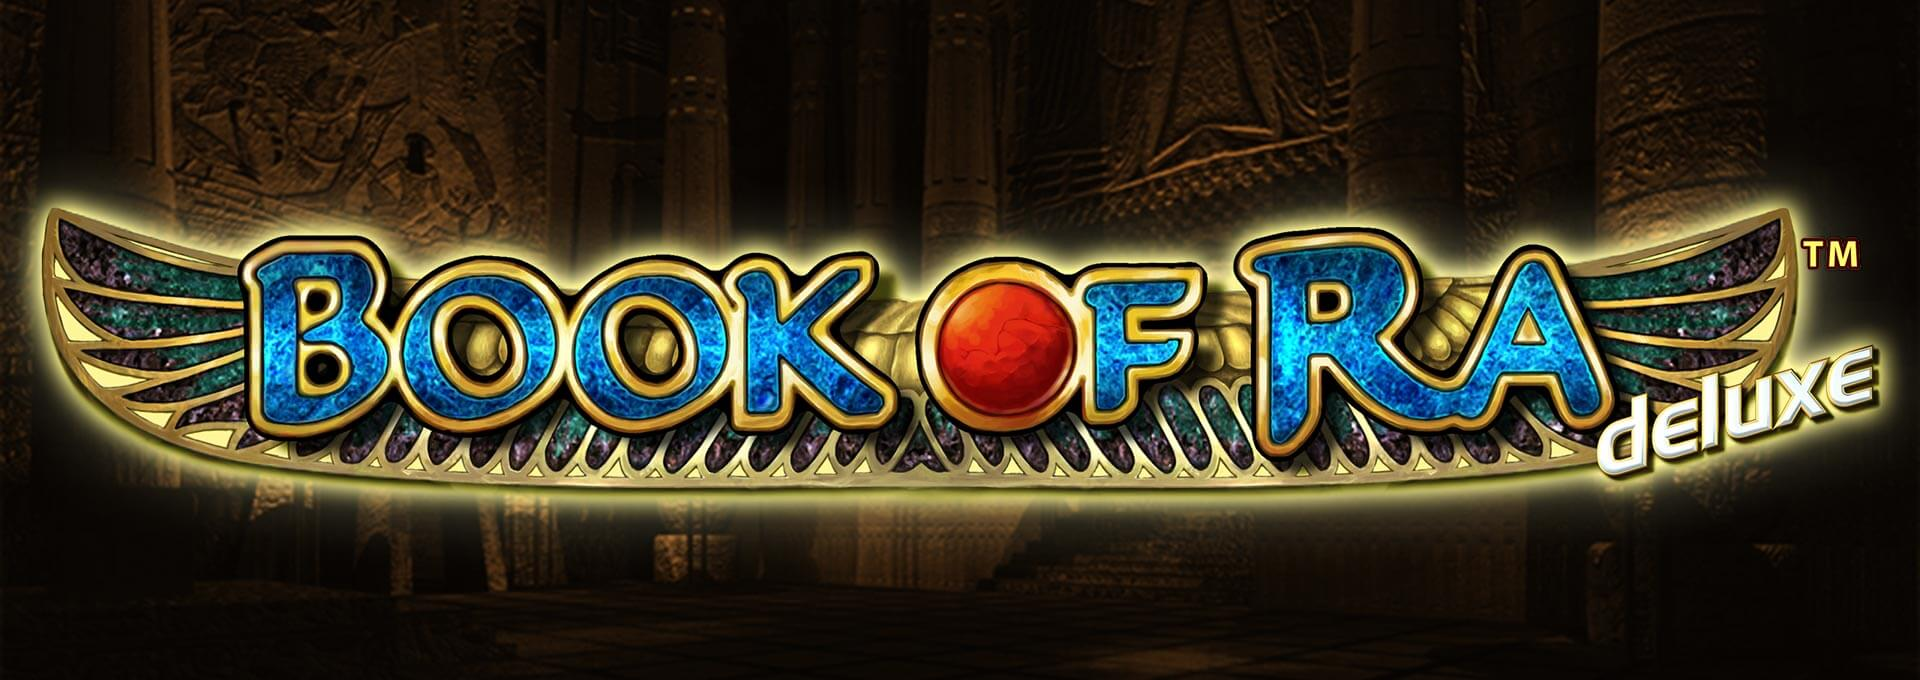 casino bet online slots book of ra free download